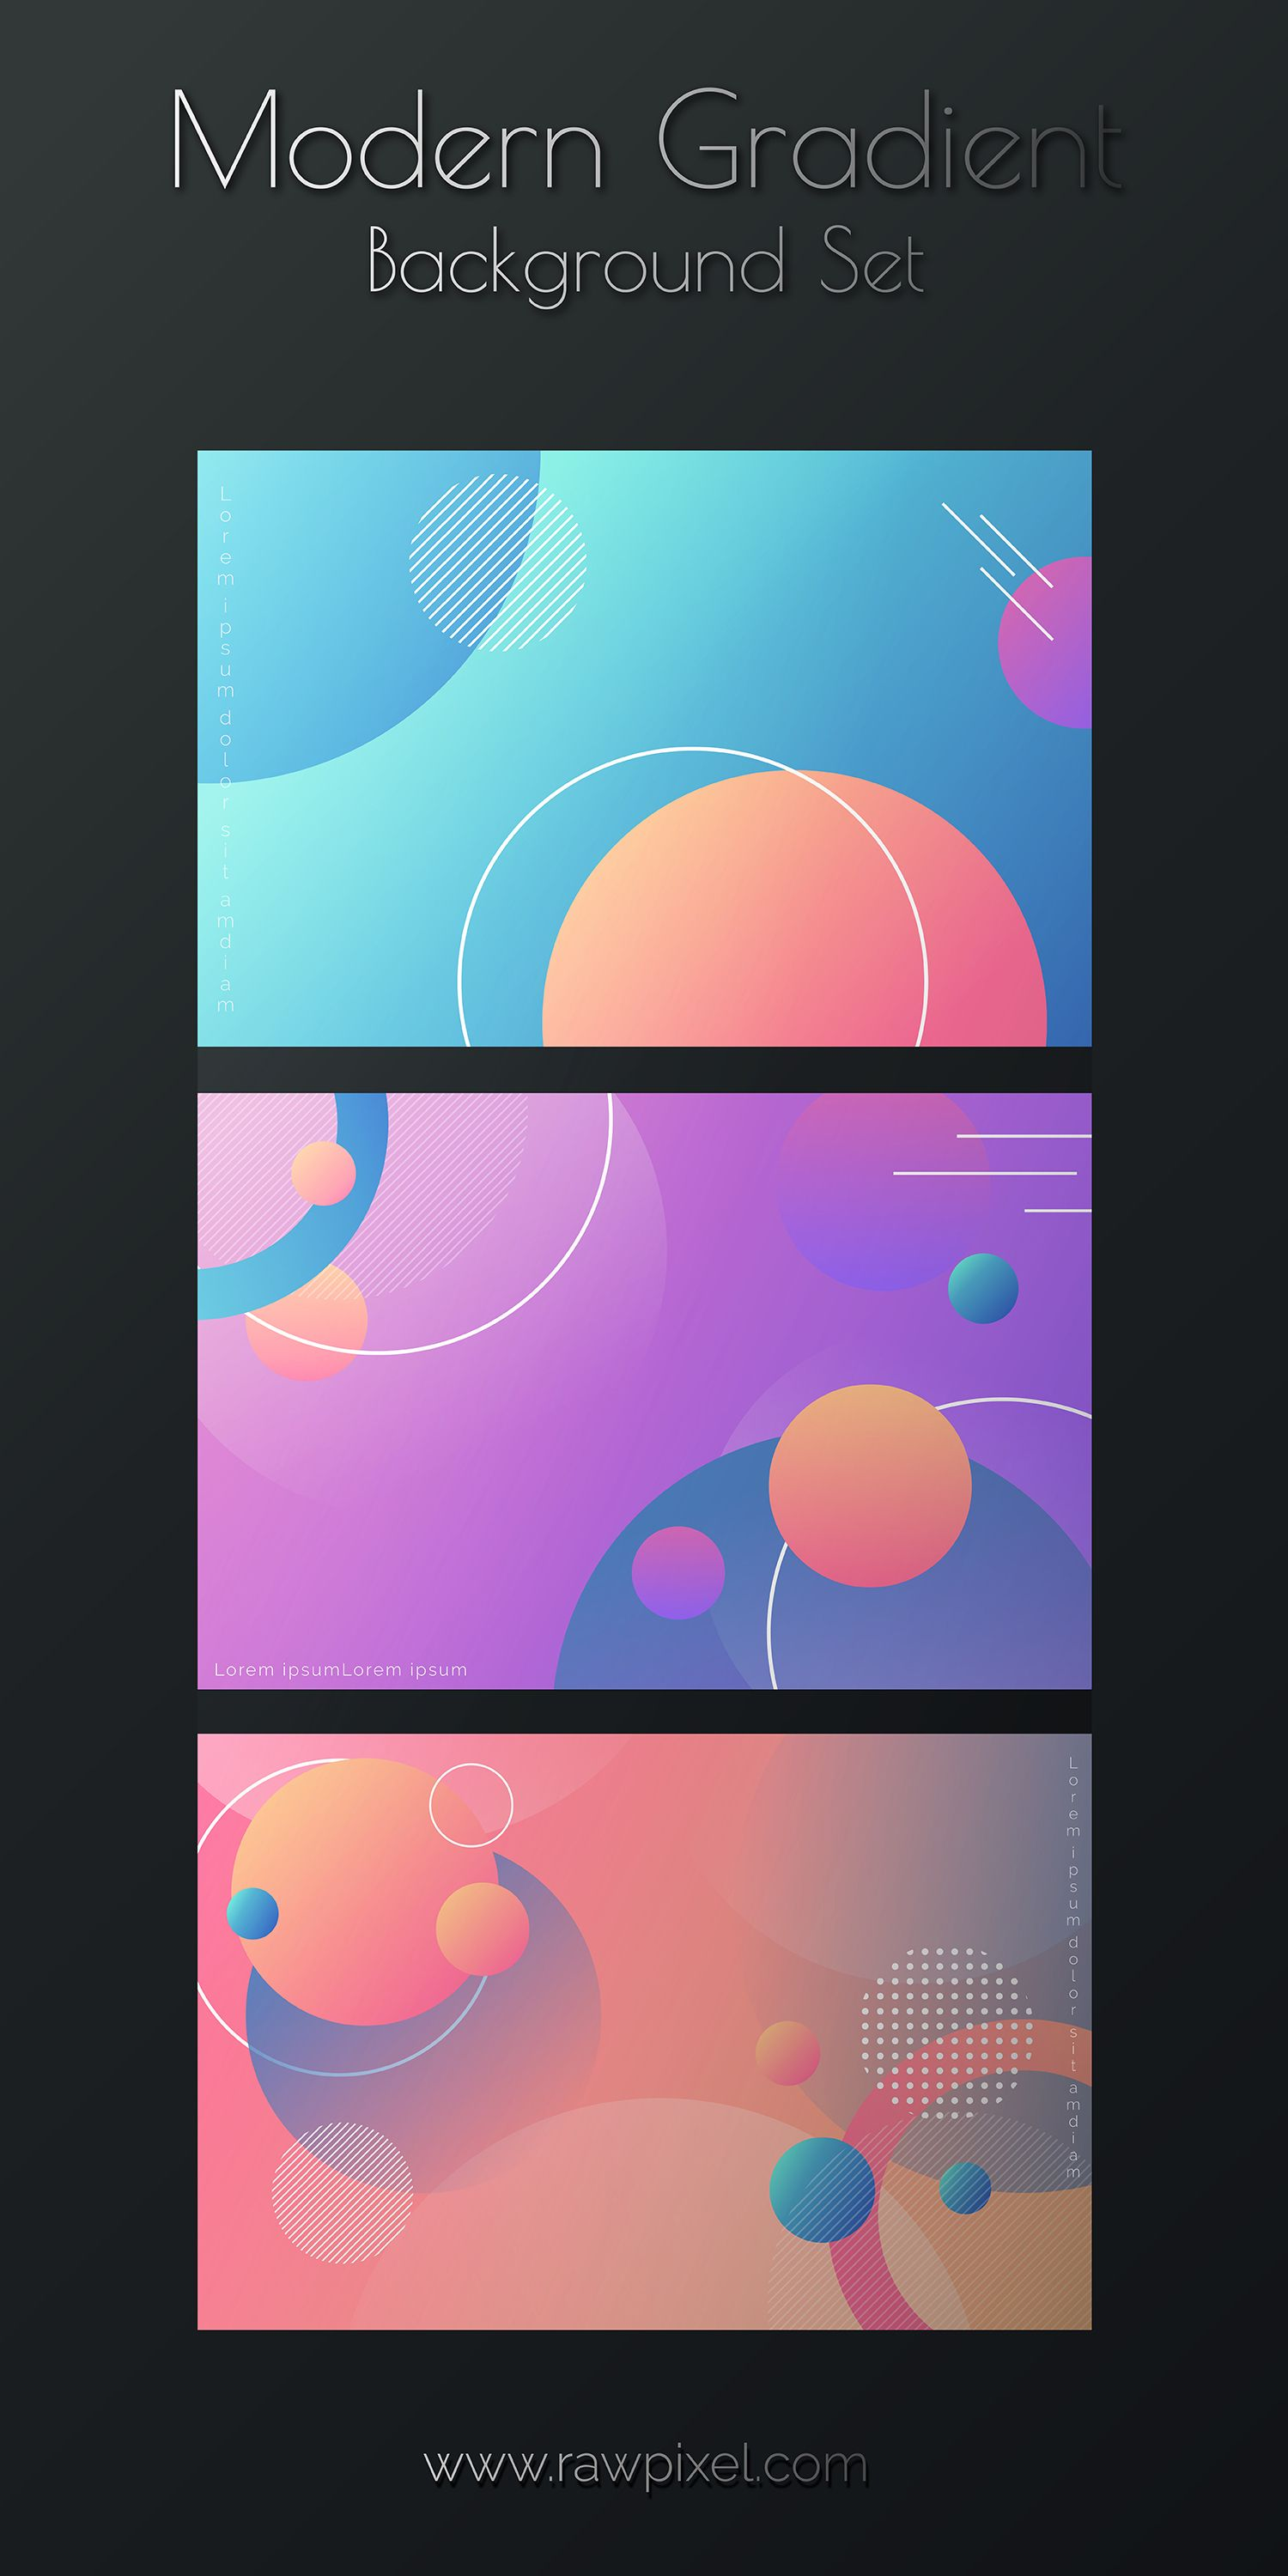 Modern Gradient Background Set In 2020 Art Poster Design Creative Banners Web Design Resources